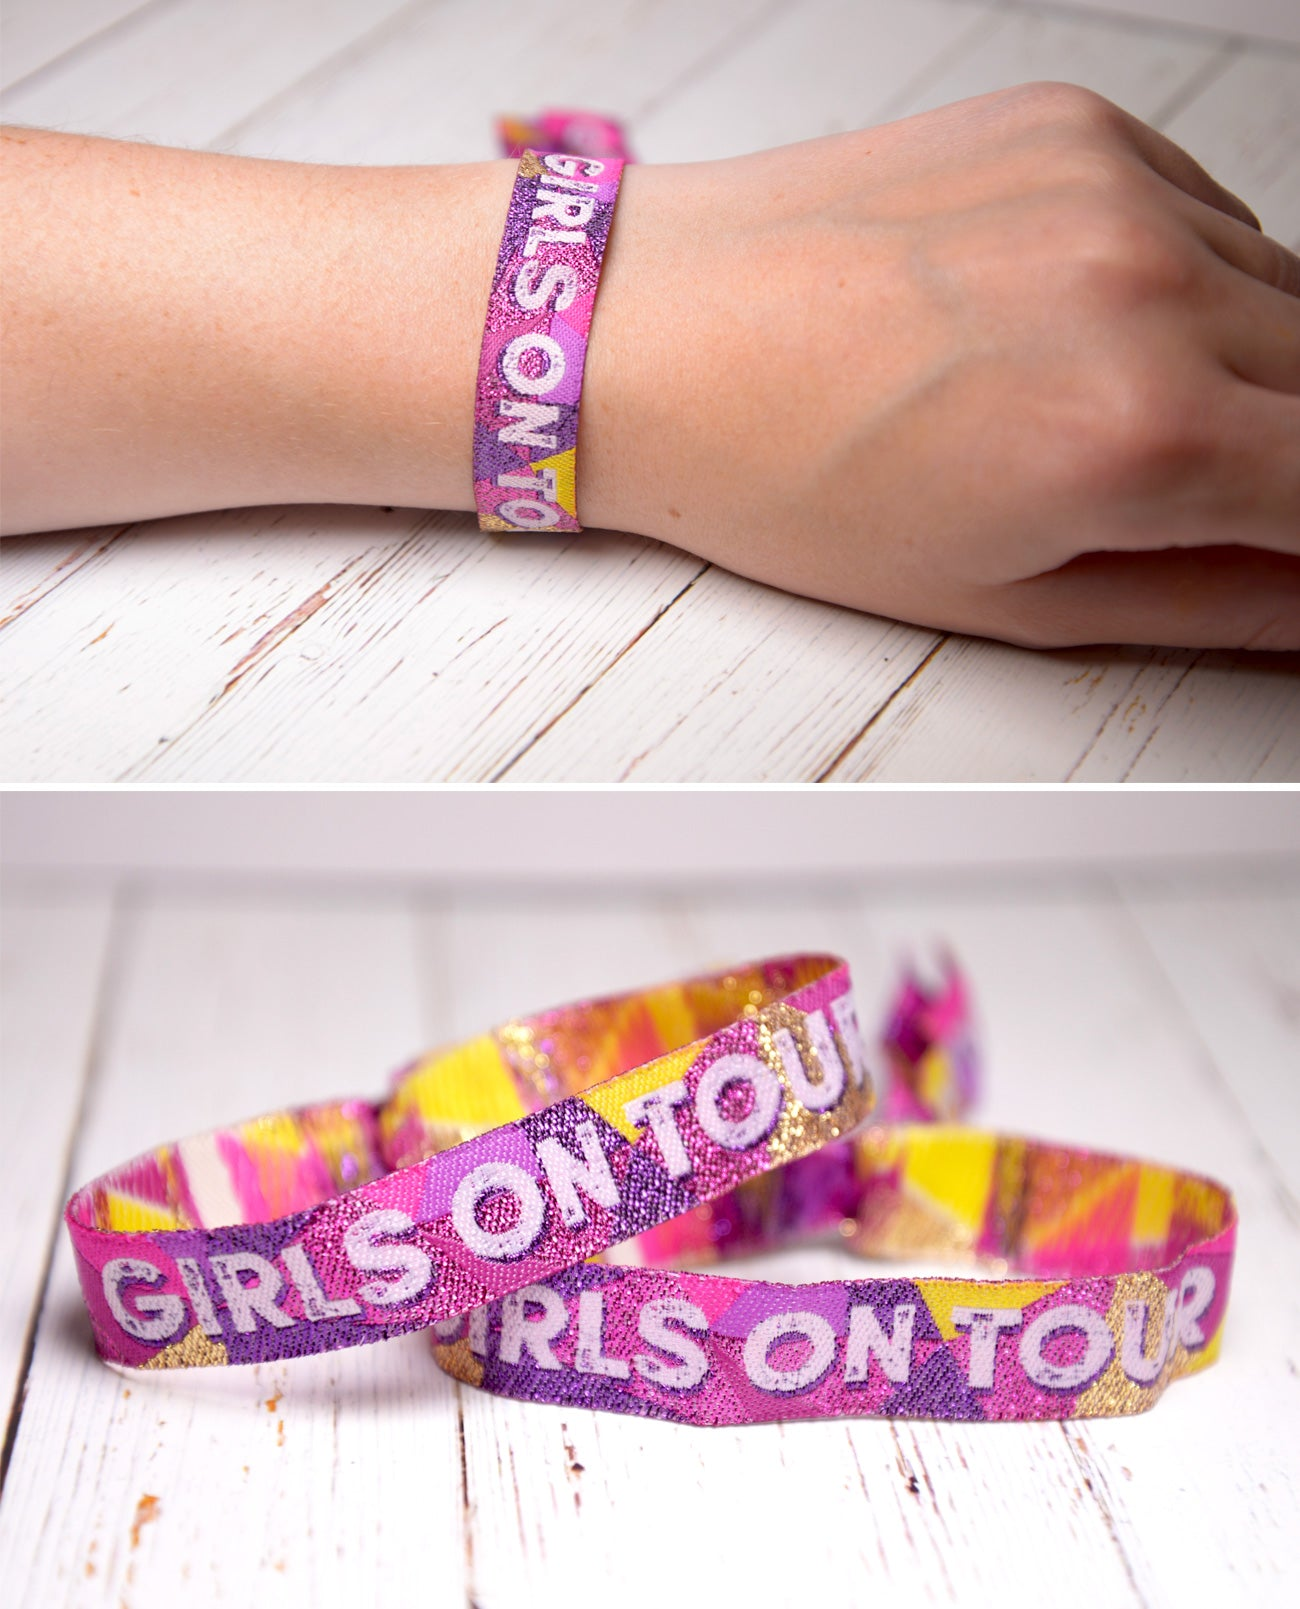 girls on tour generic festival party wristbands